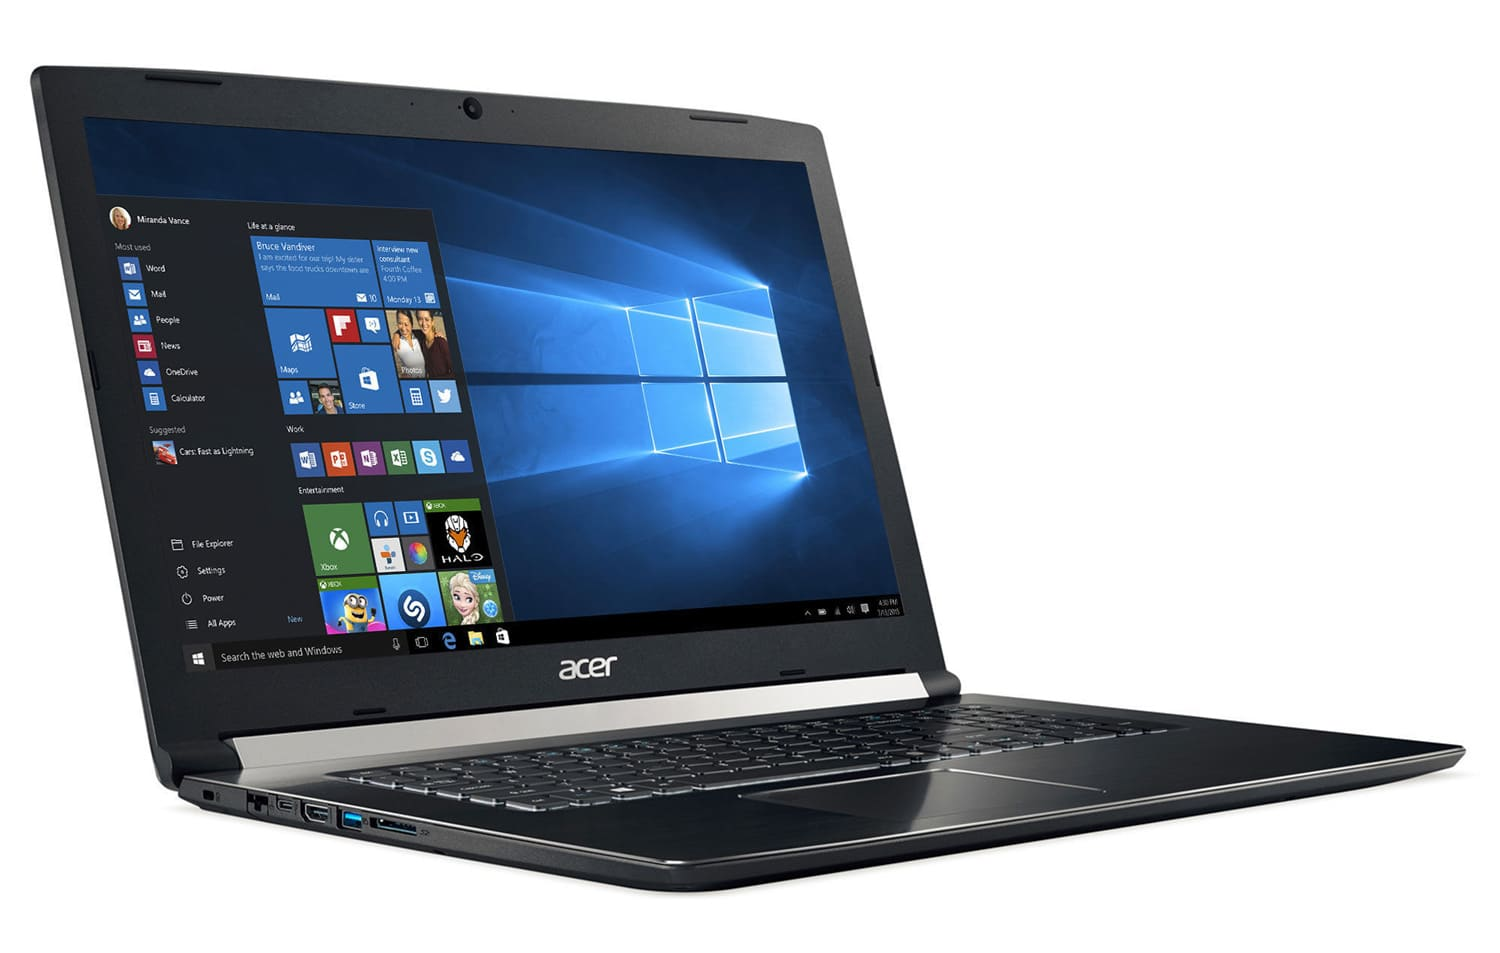 Acer Aspire A717-71G-70U2, PC 17 pouces Full IPS i7 Kaby GTX 1050 (799€)